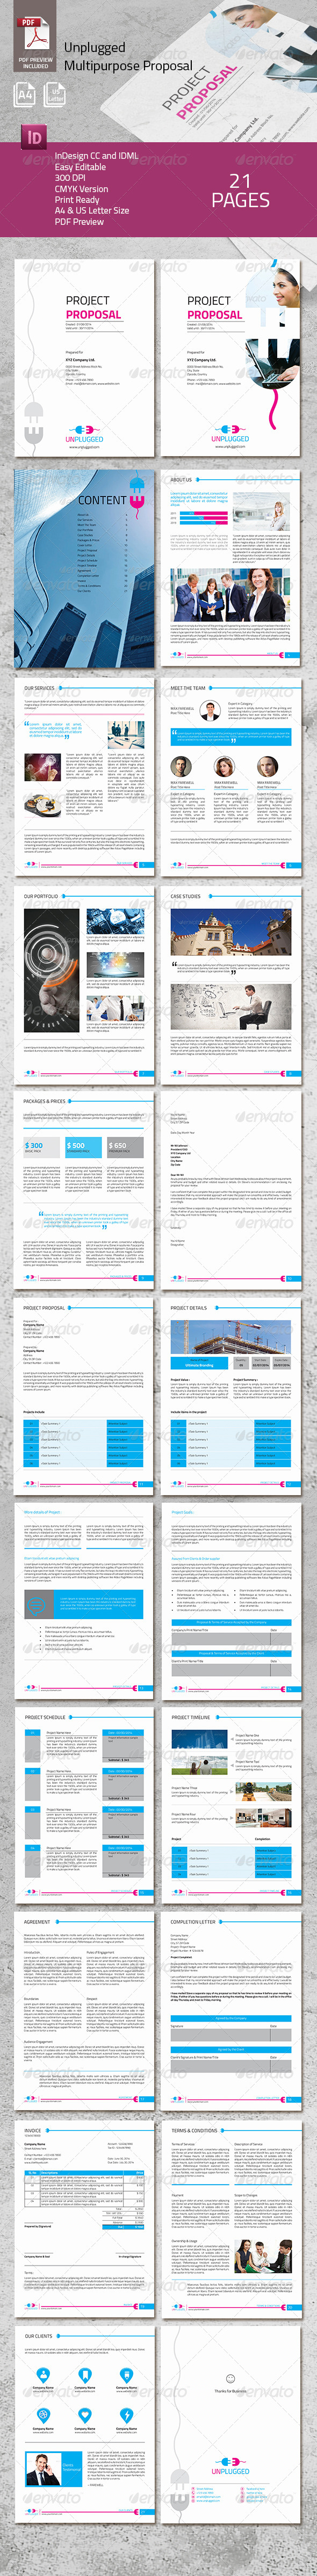 Unplugged Multipurpose Proposal - Proposals & Invoices Stationery